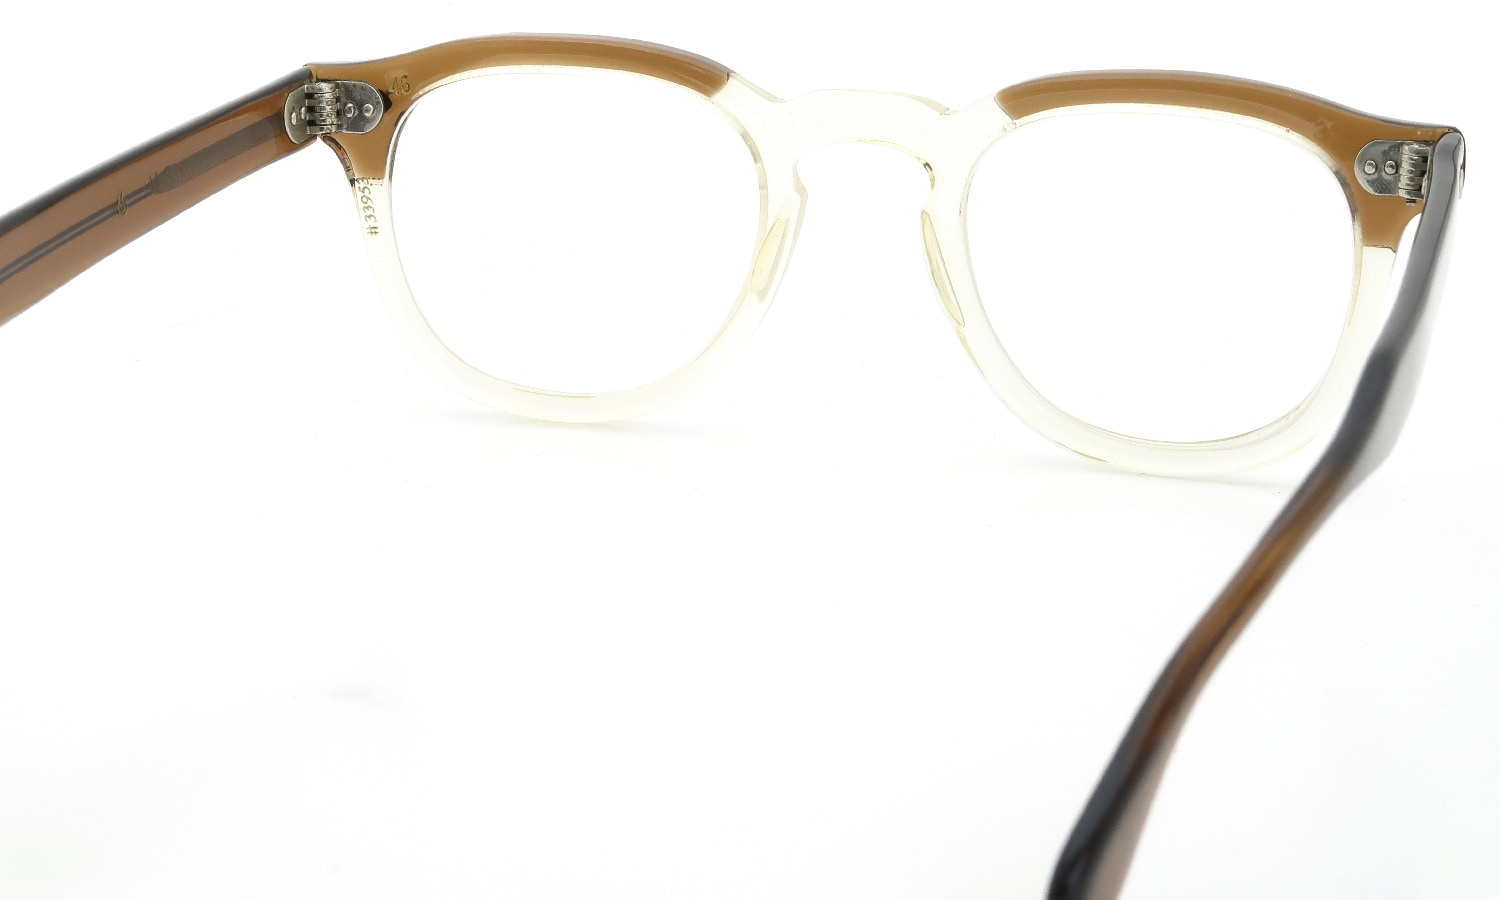 TART Optical vintage 1950s〜1970s ARNEL BROWN-SMOKE-C 46-24